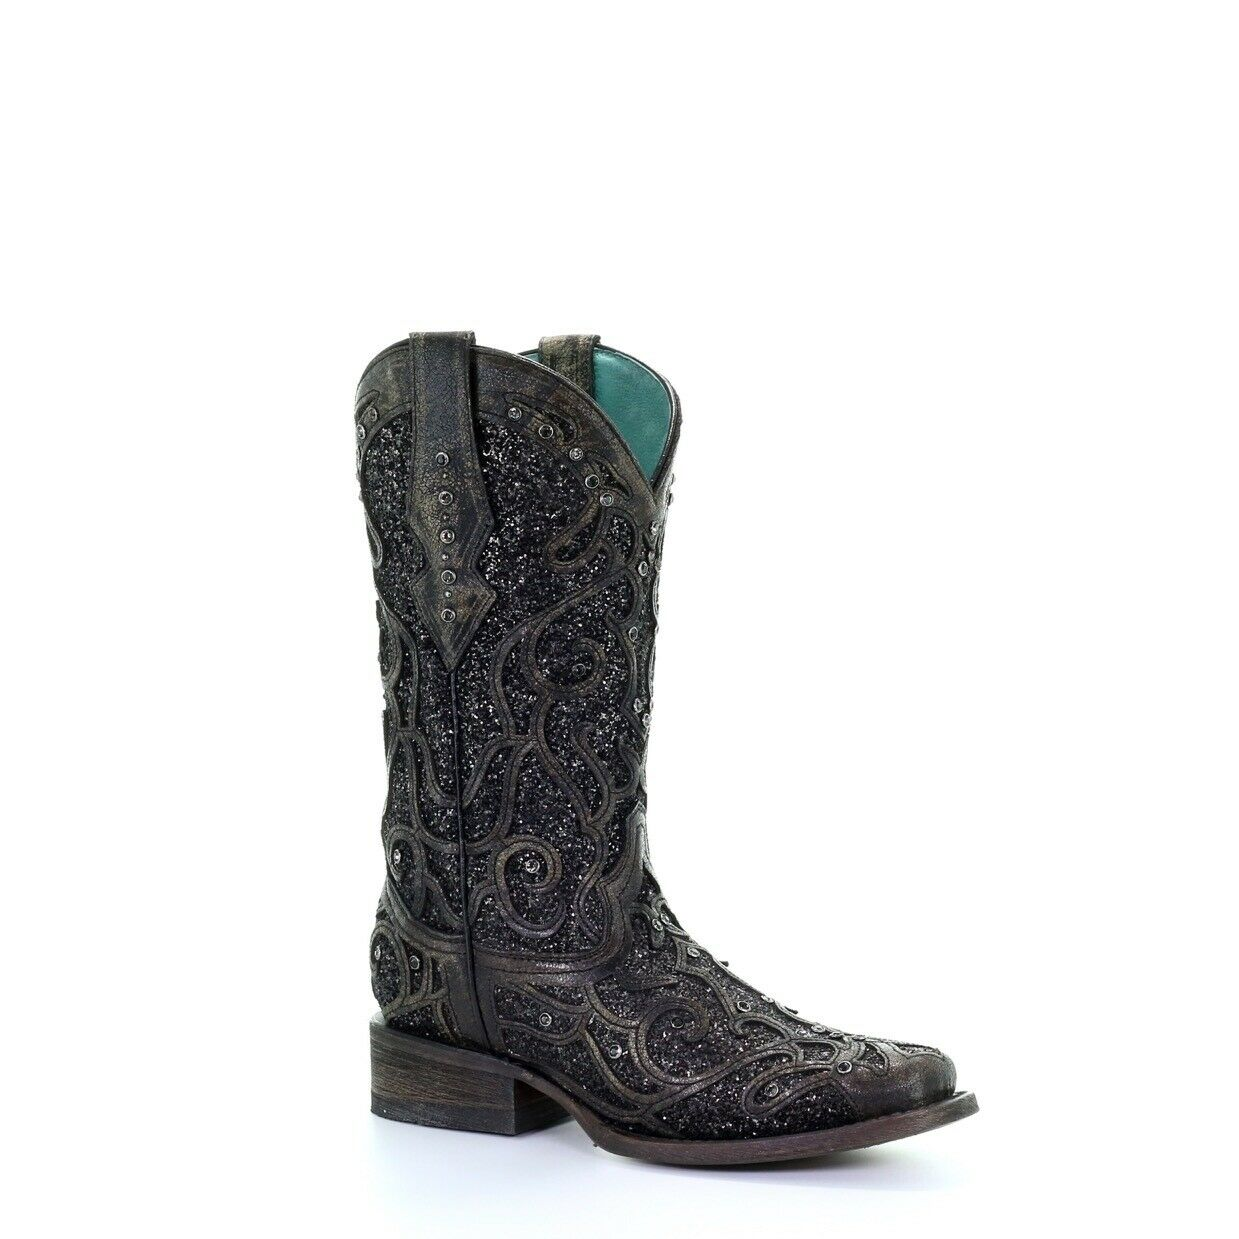 Corral Ladies Black Glitter Inlay & Studs Boots C3484